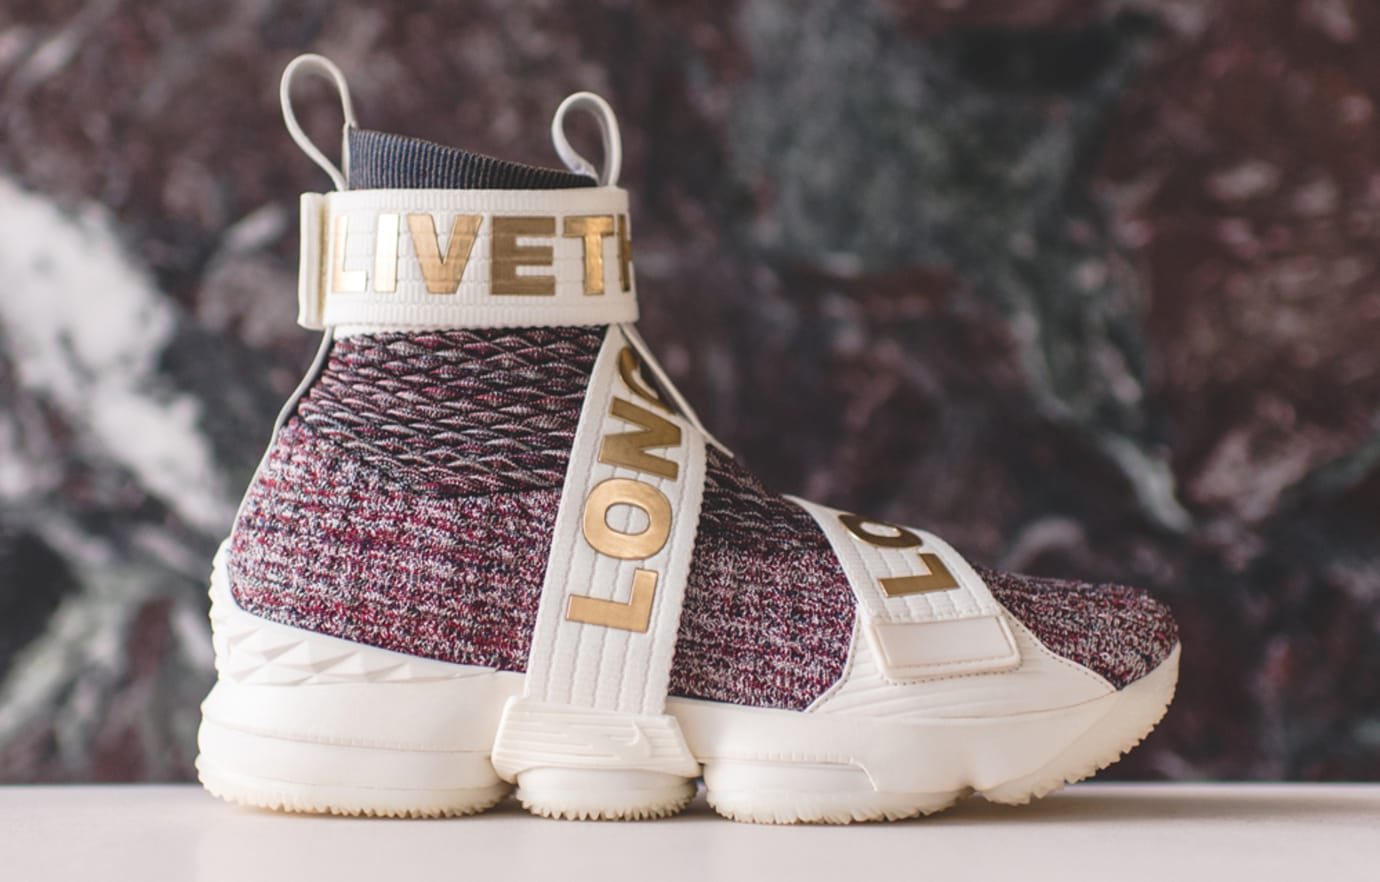 new concept 78f98 f4c29 Kith Nike LeBron 15 Long Live the King Release Date | Sole ...